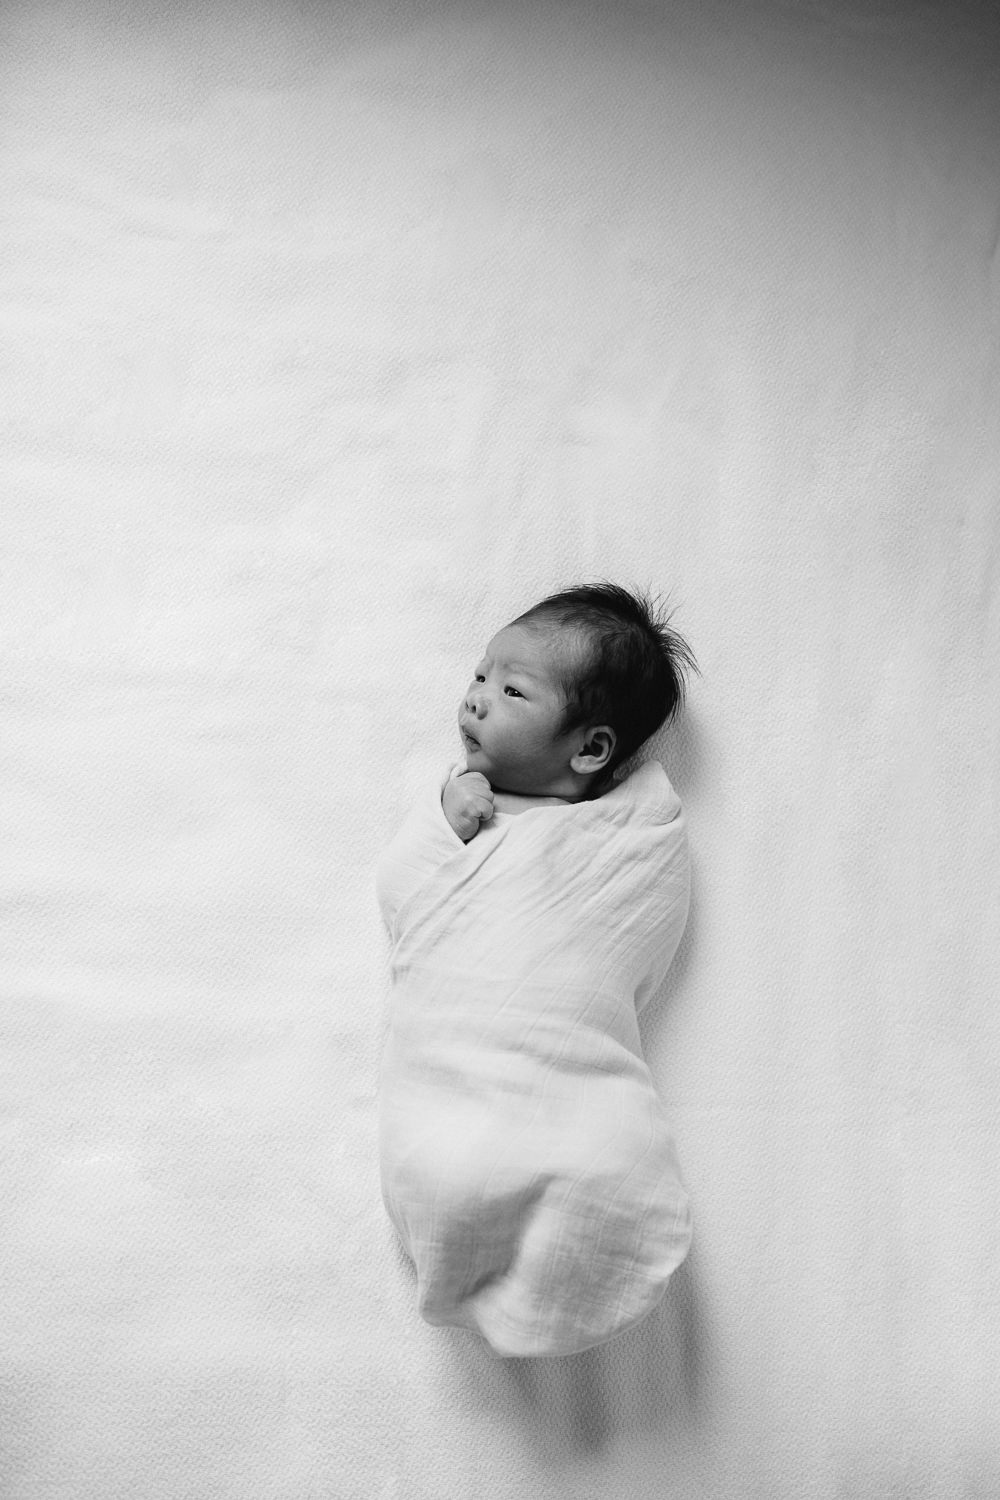 2 week old baby boy with dark hair wrapped in swaddle lying awake on bed - Barrie Lifestyle Photography